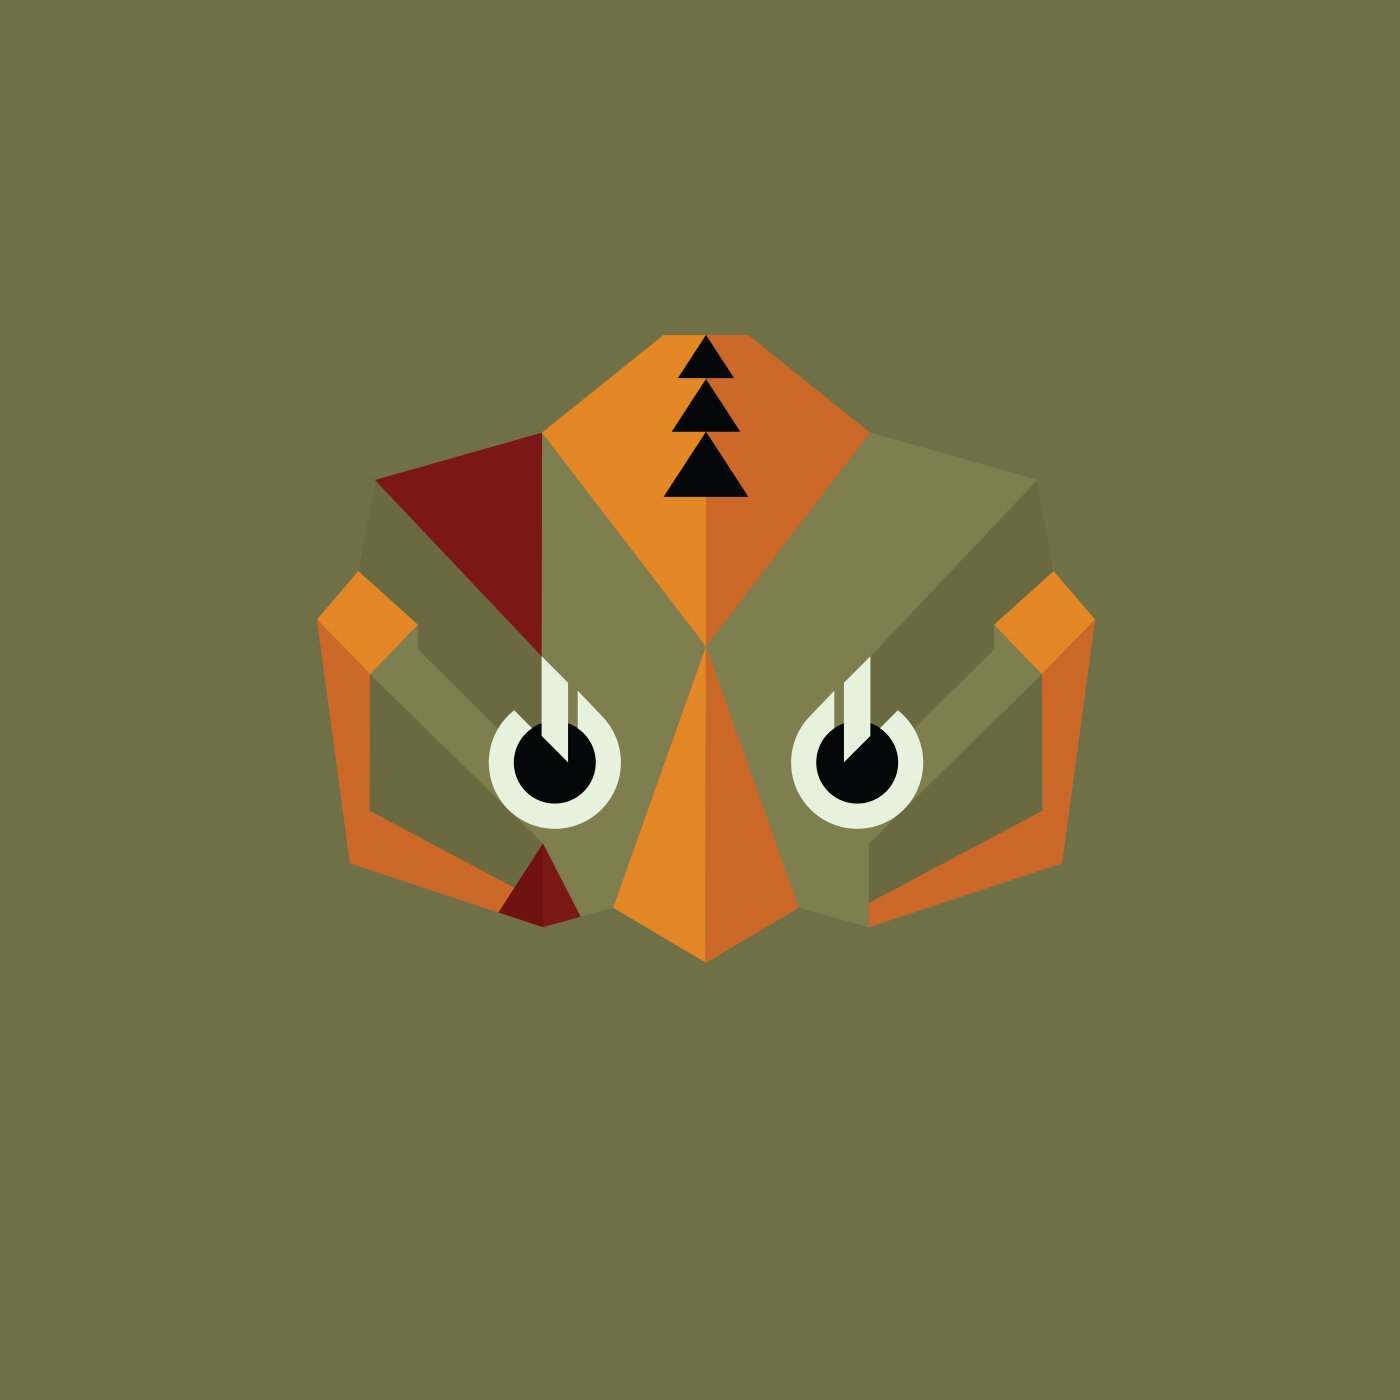 logo_logout_musik_mask_by_andre_levy_zhion.jpg